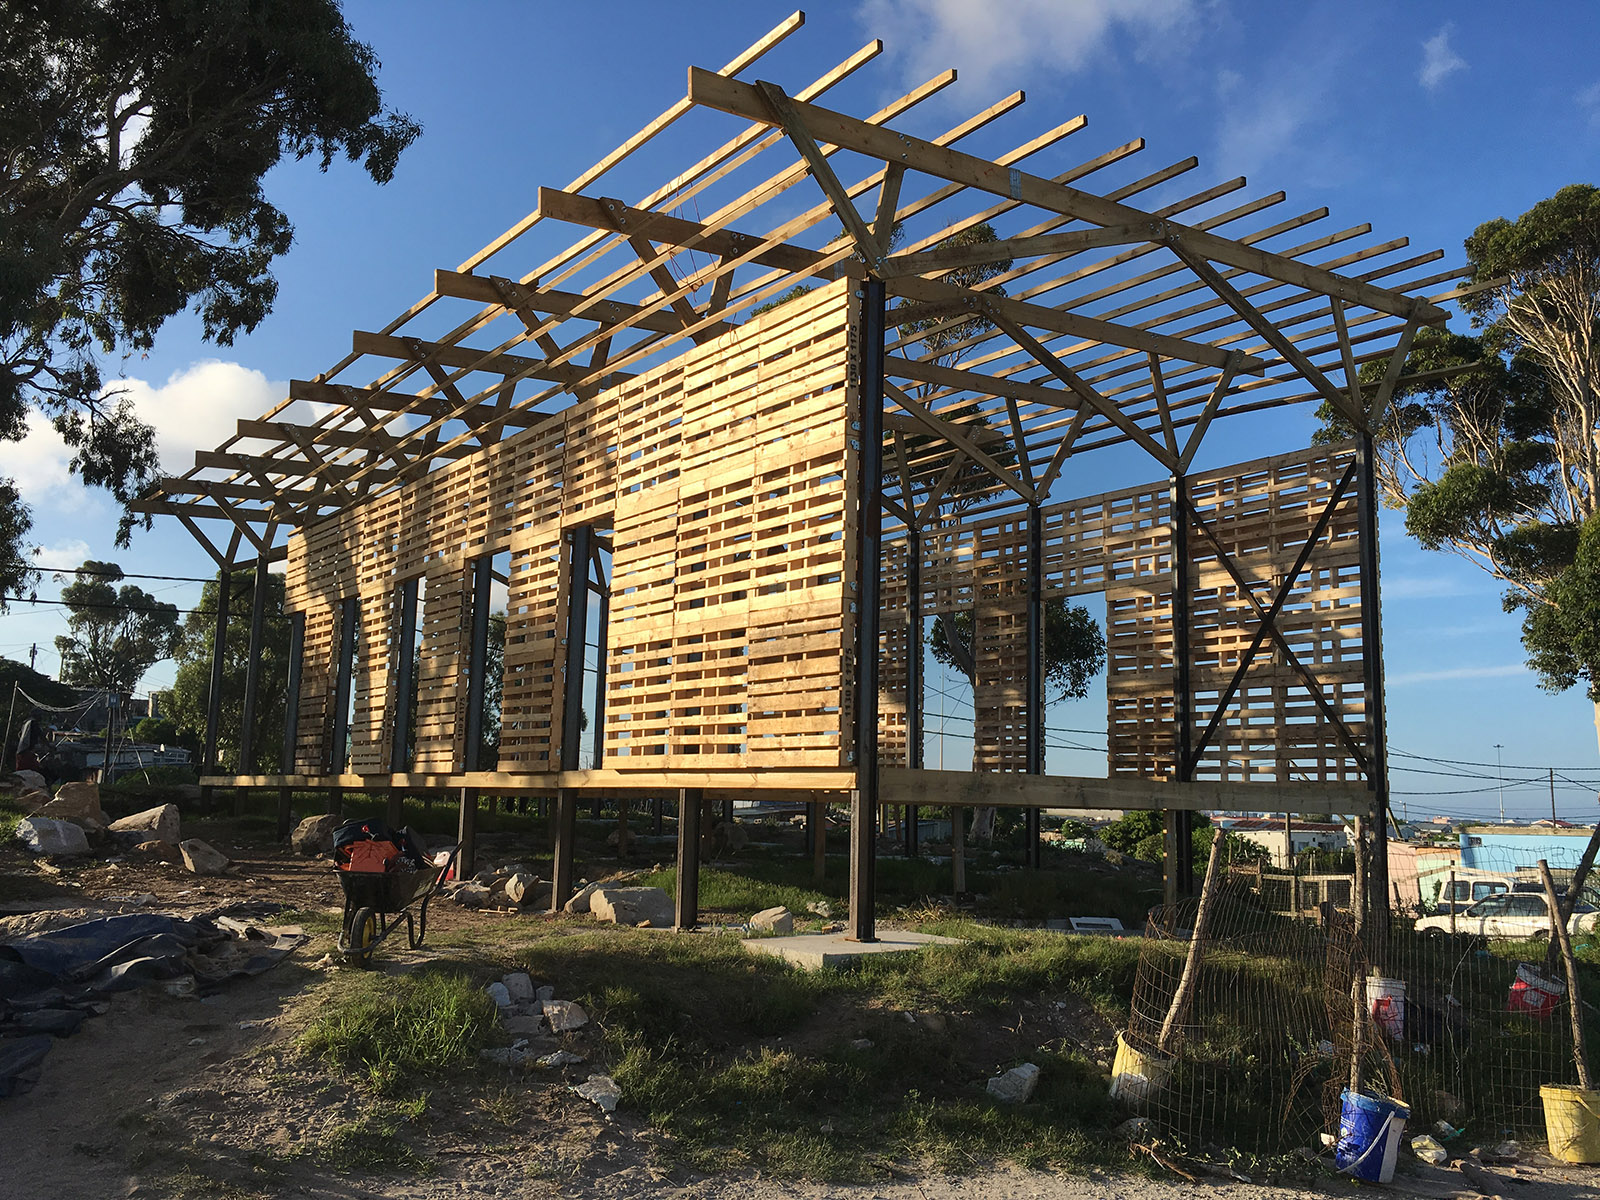 Walmer Crèche by Simon Galland with LYT Architecture under construction, showing the timber pallets